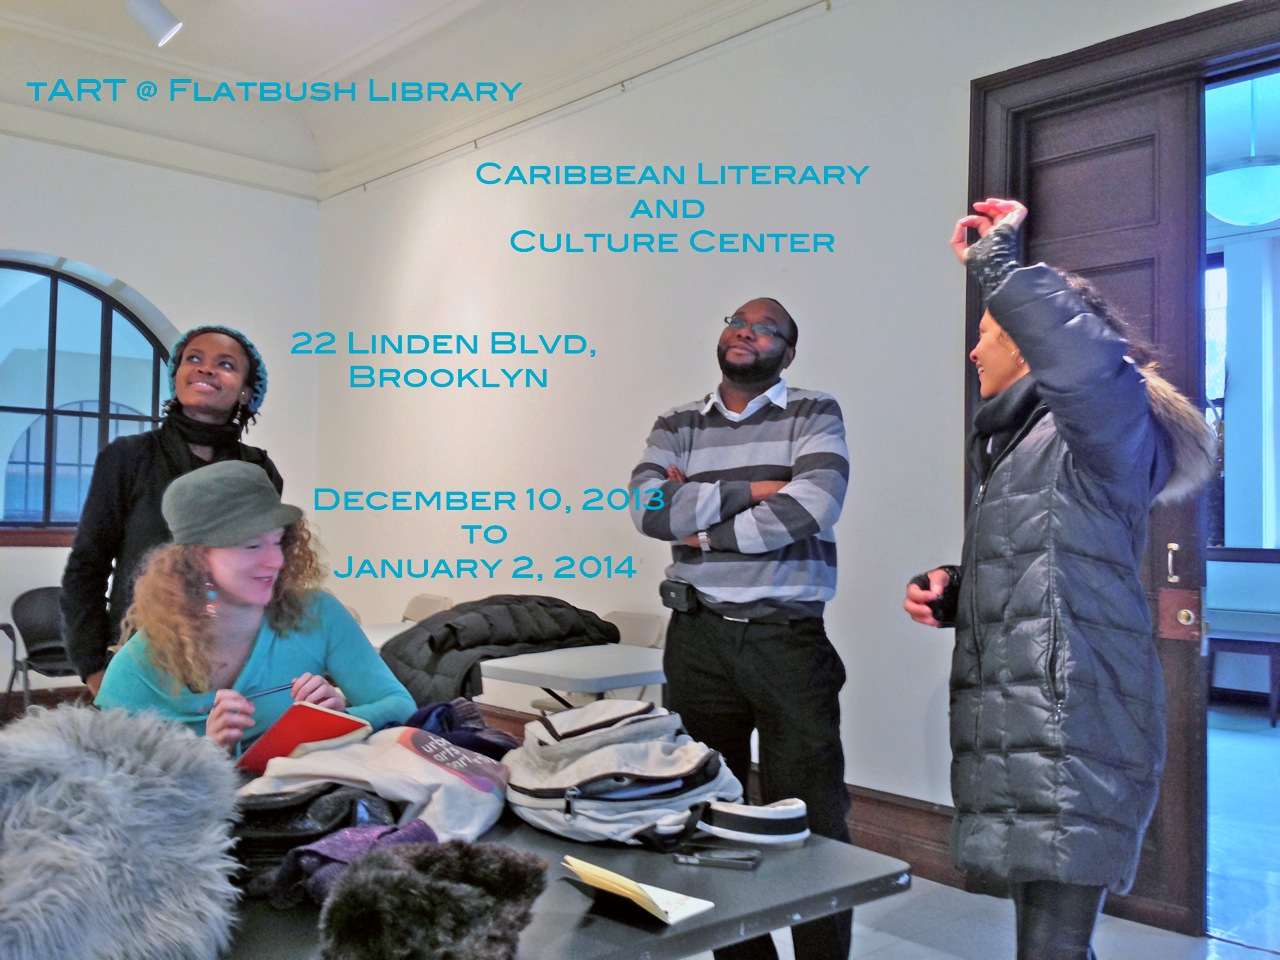 2013: tART @ Flatbush Library tART @ Flatbush Library, organized & curated by damali abrams